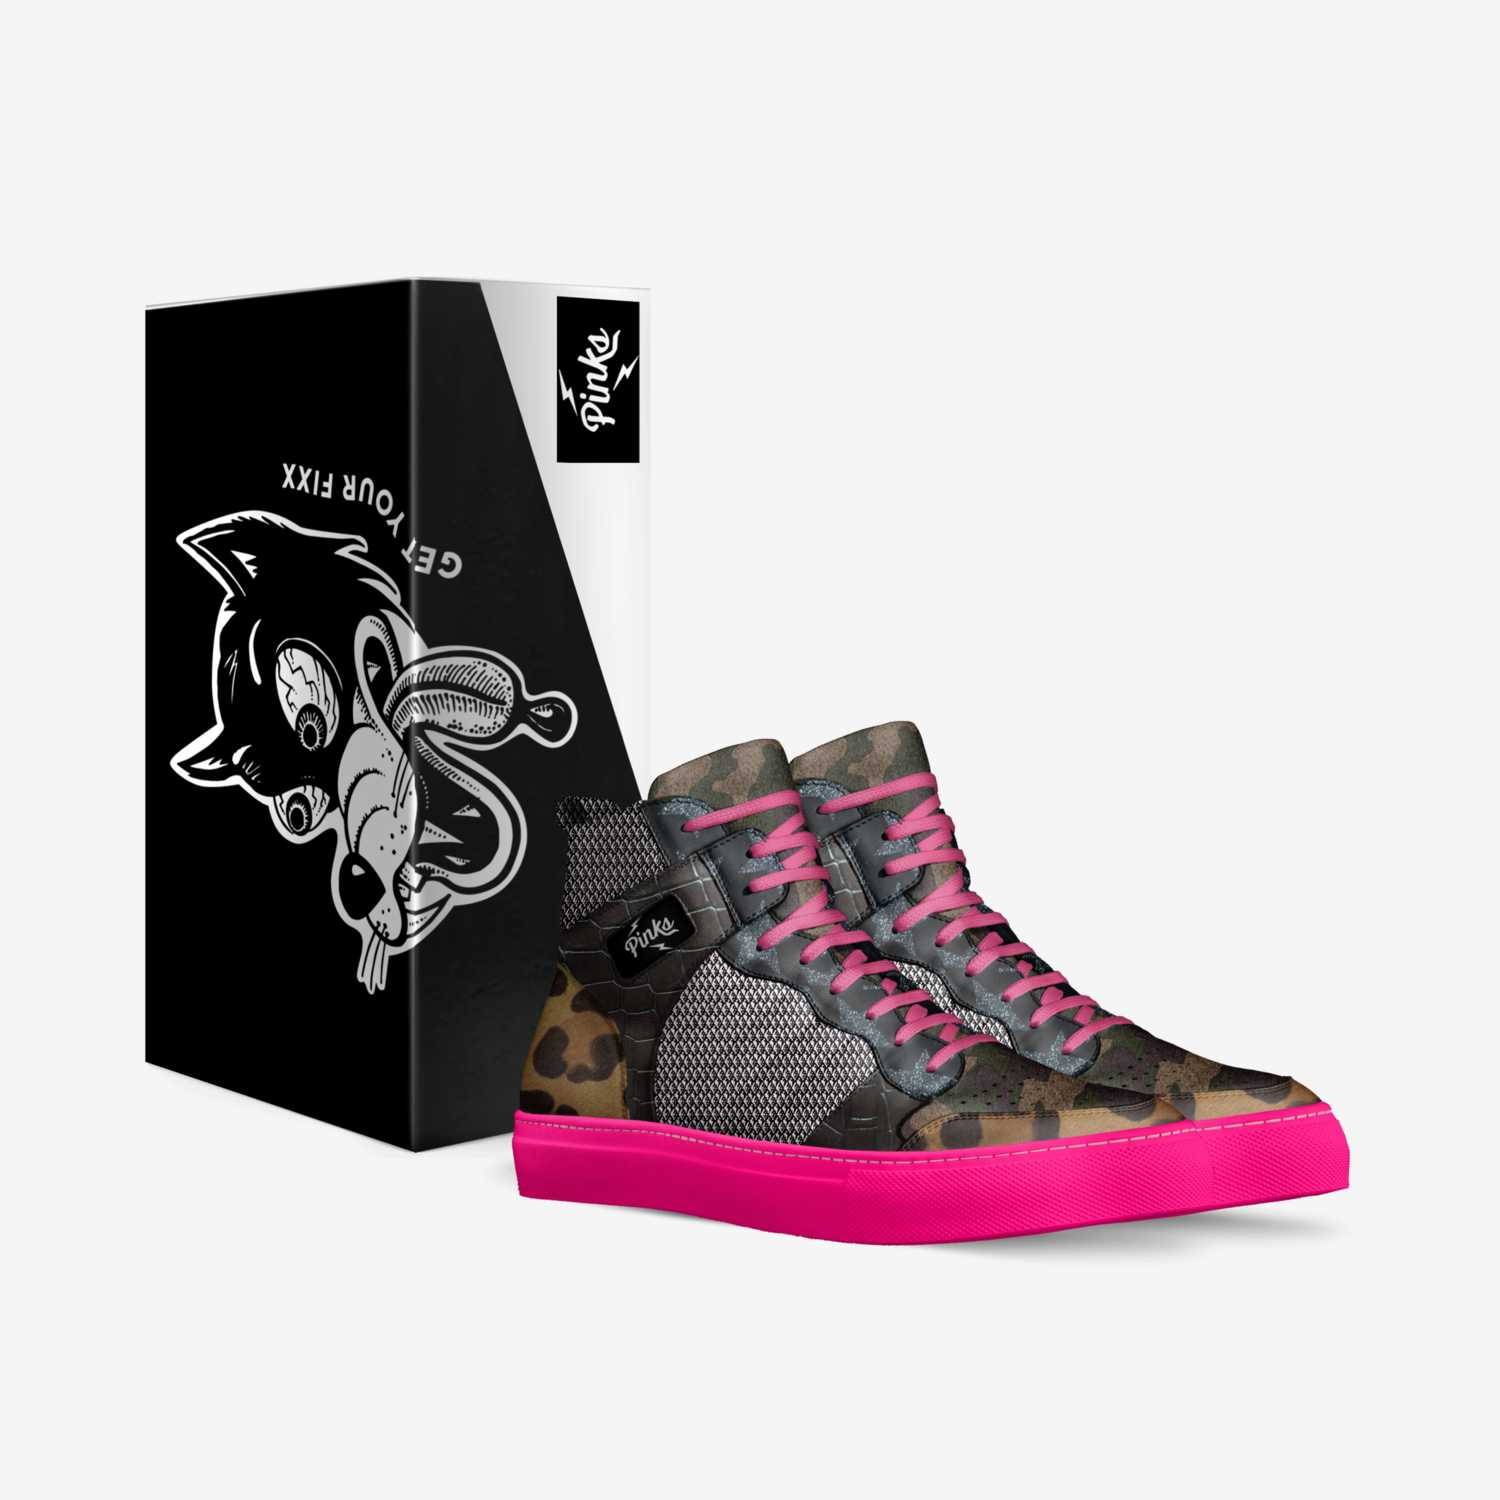 PINKS custom made in Italy shoes by Pimptronot | Box view